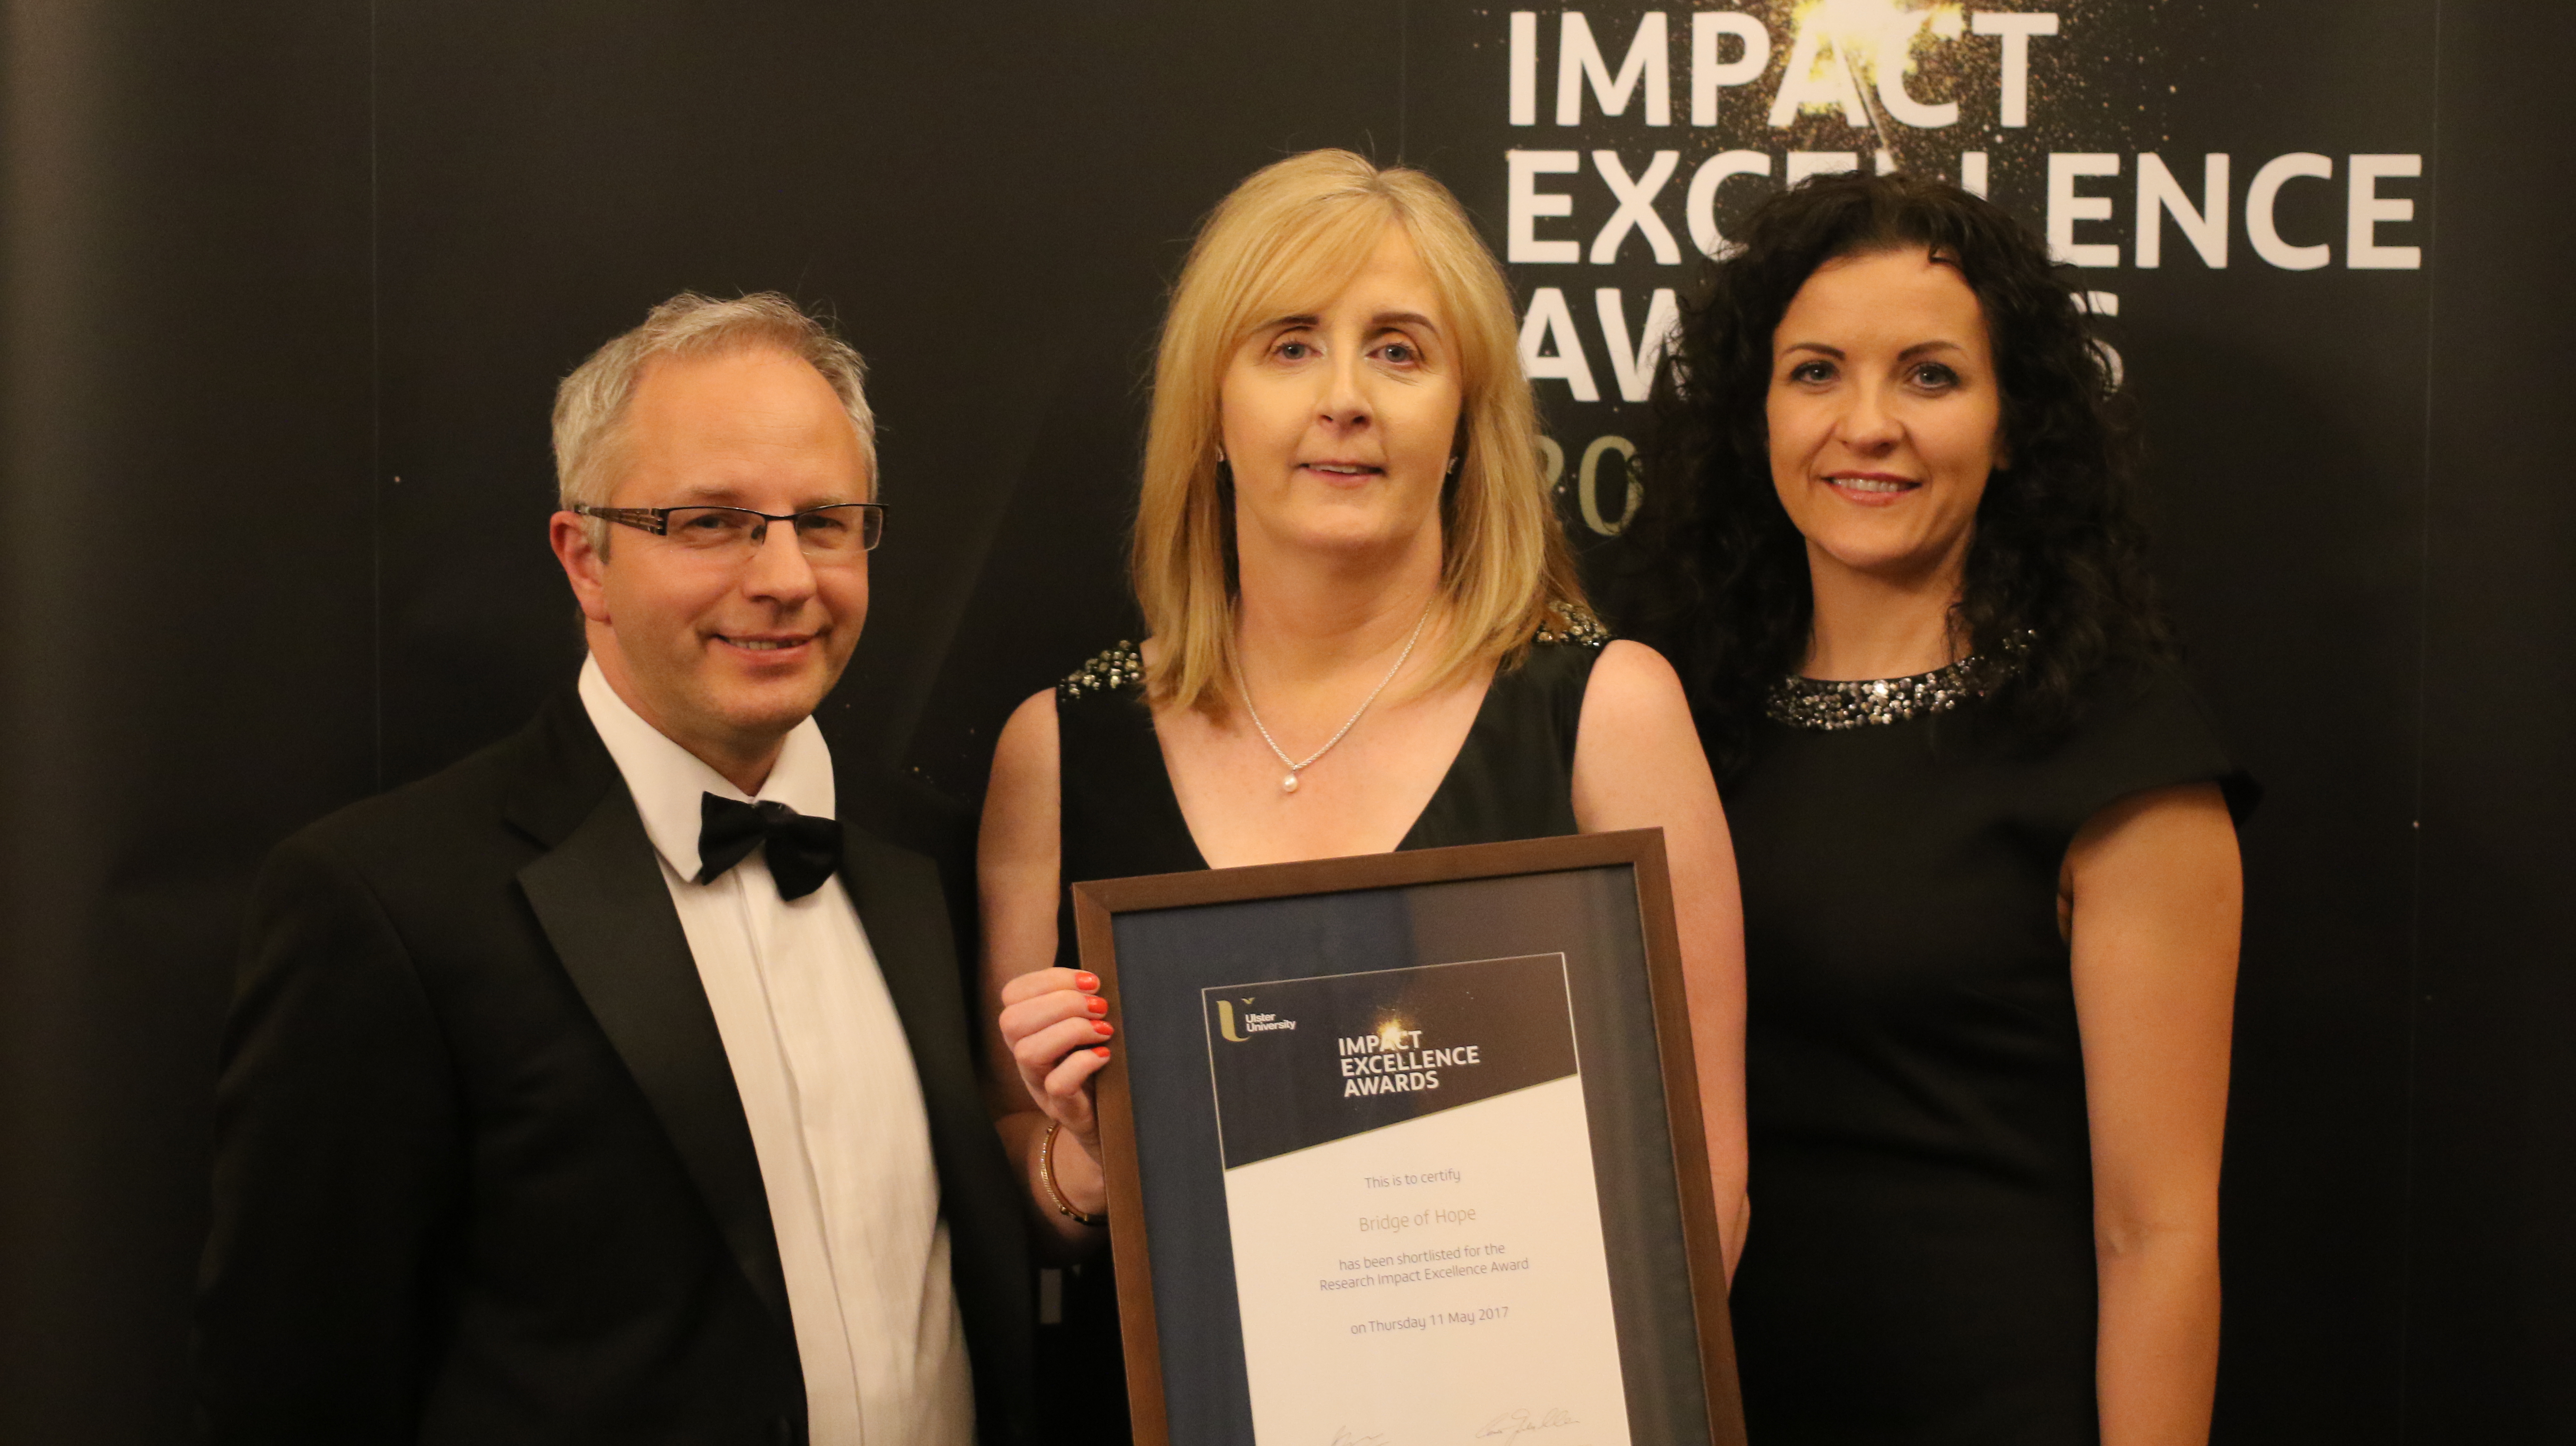 Impact Excellence Awards May 2017